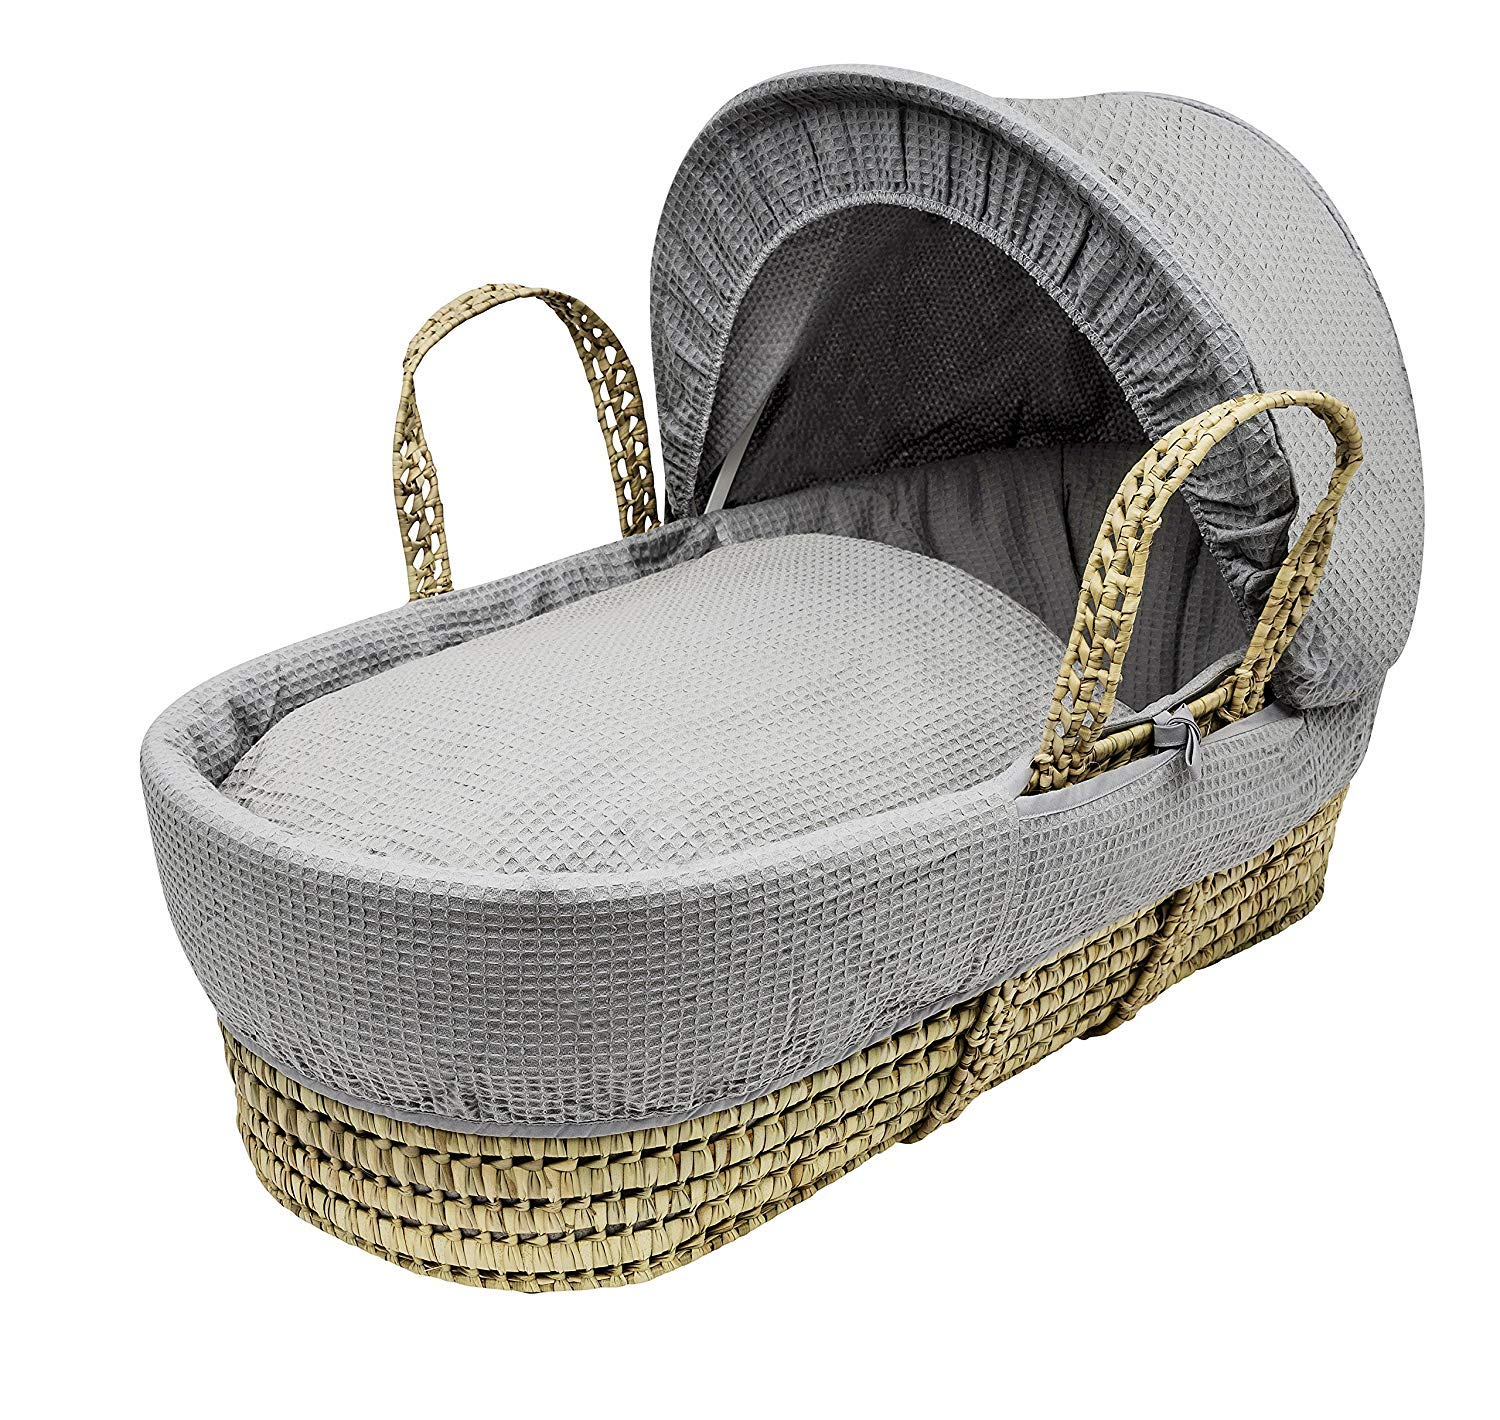 Baby REX New Grey Waffle Moses Basket Covers 4 Piece Bedding Set Only Inc Quilt,Skirt,Hood & Sheet